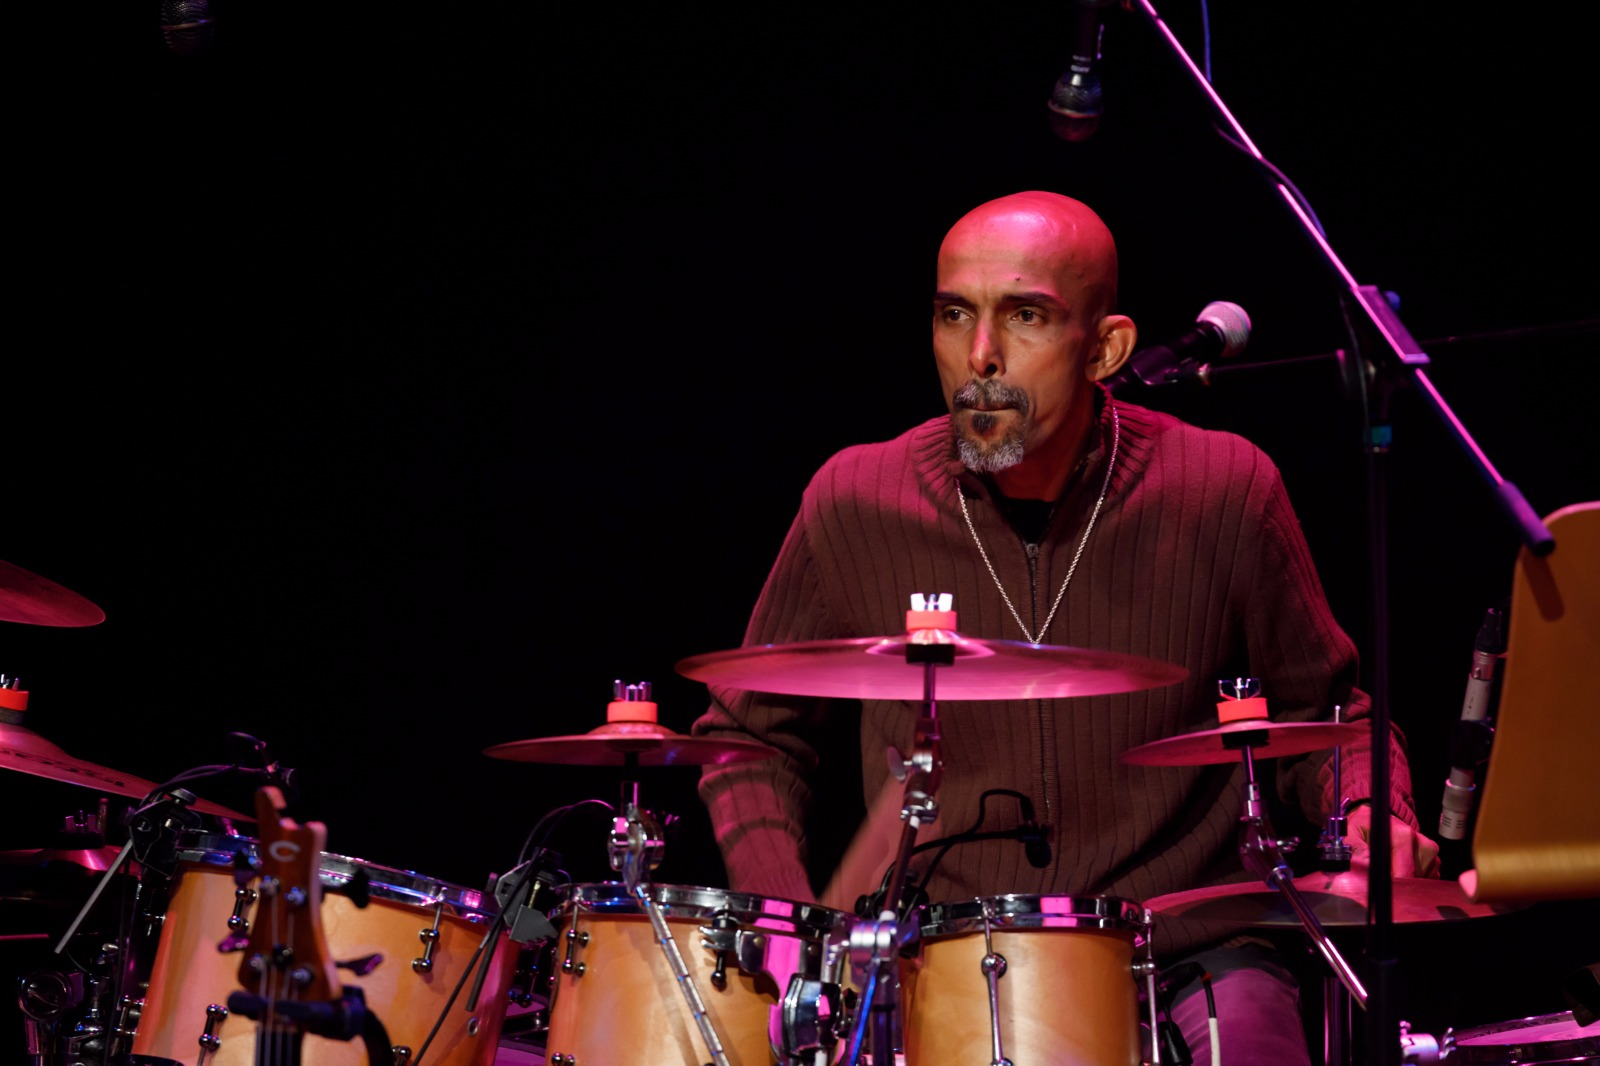 Percussionist Mohamed Noor believes that art is all about human emotions and feelings.